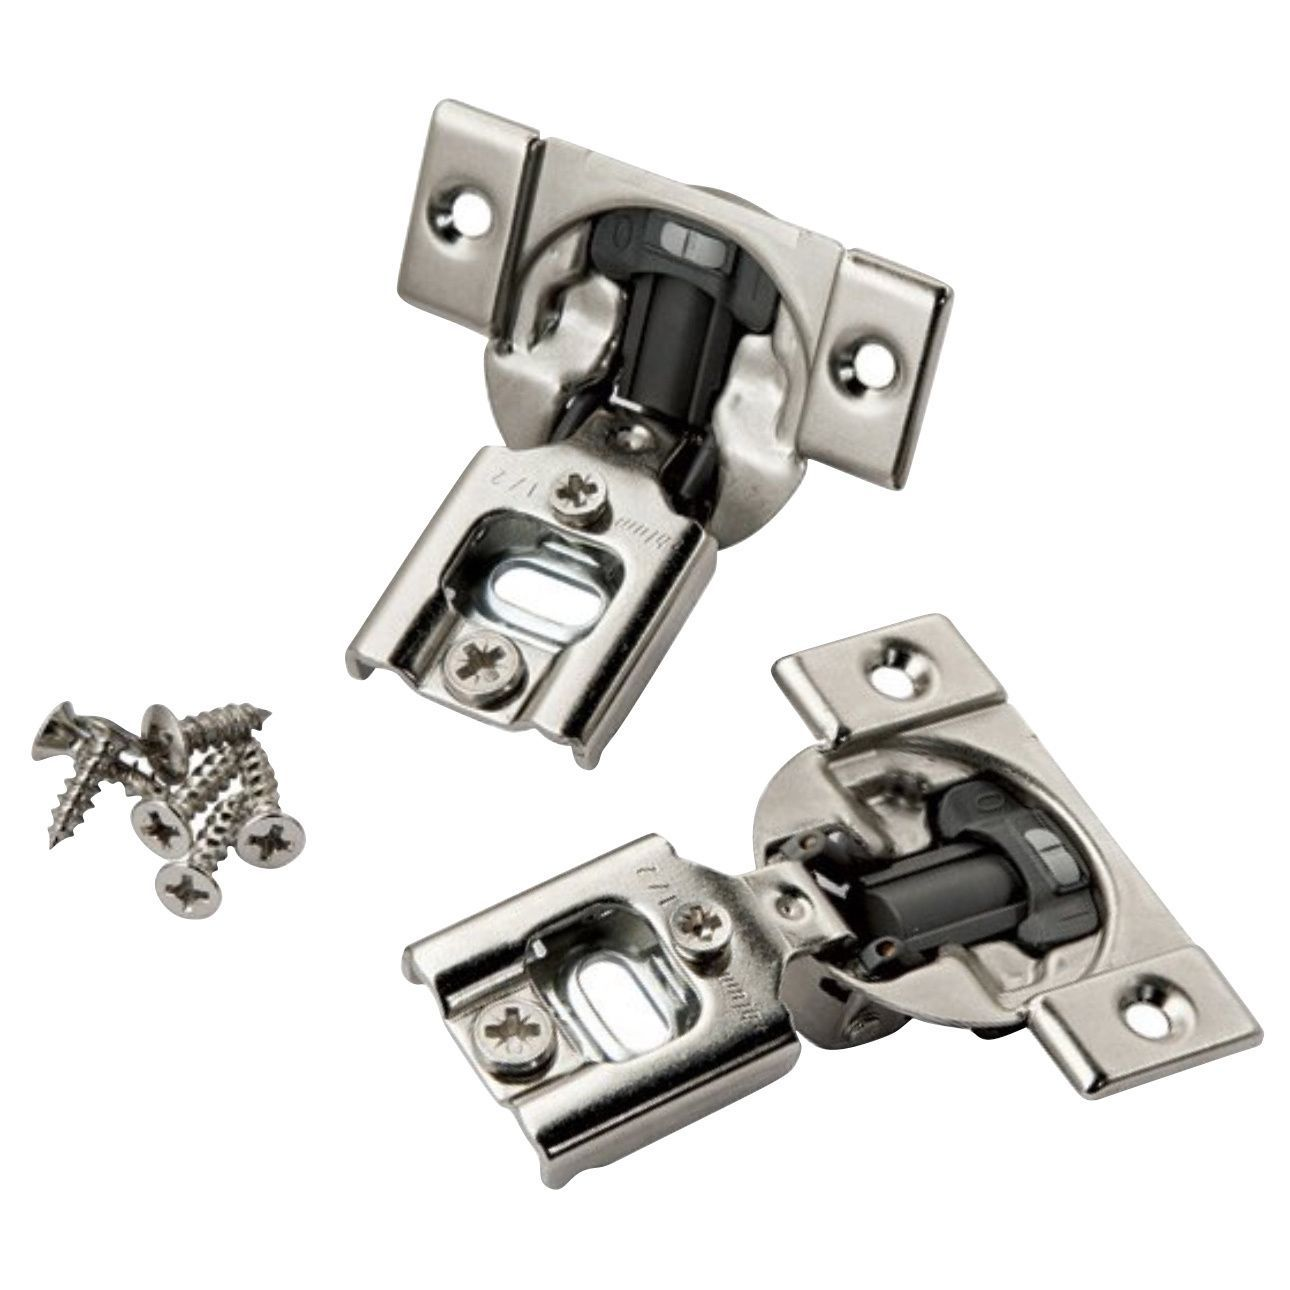 Rok Hardware 10 Pack Blum 105 Degree Compact 38n Series Blumotion 1 2 Overlay Screw On Soft Closing Cabinet Hinge 10 Pack Compact Blumotion 1 2 Ol Hinges For Cabinets Overlay Hinges Hardware